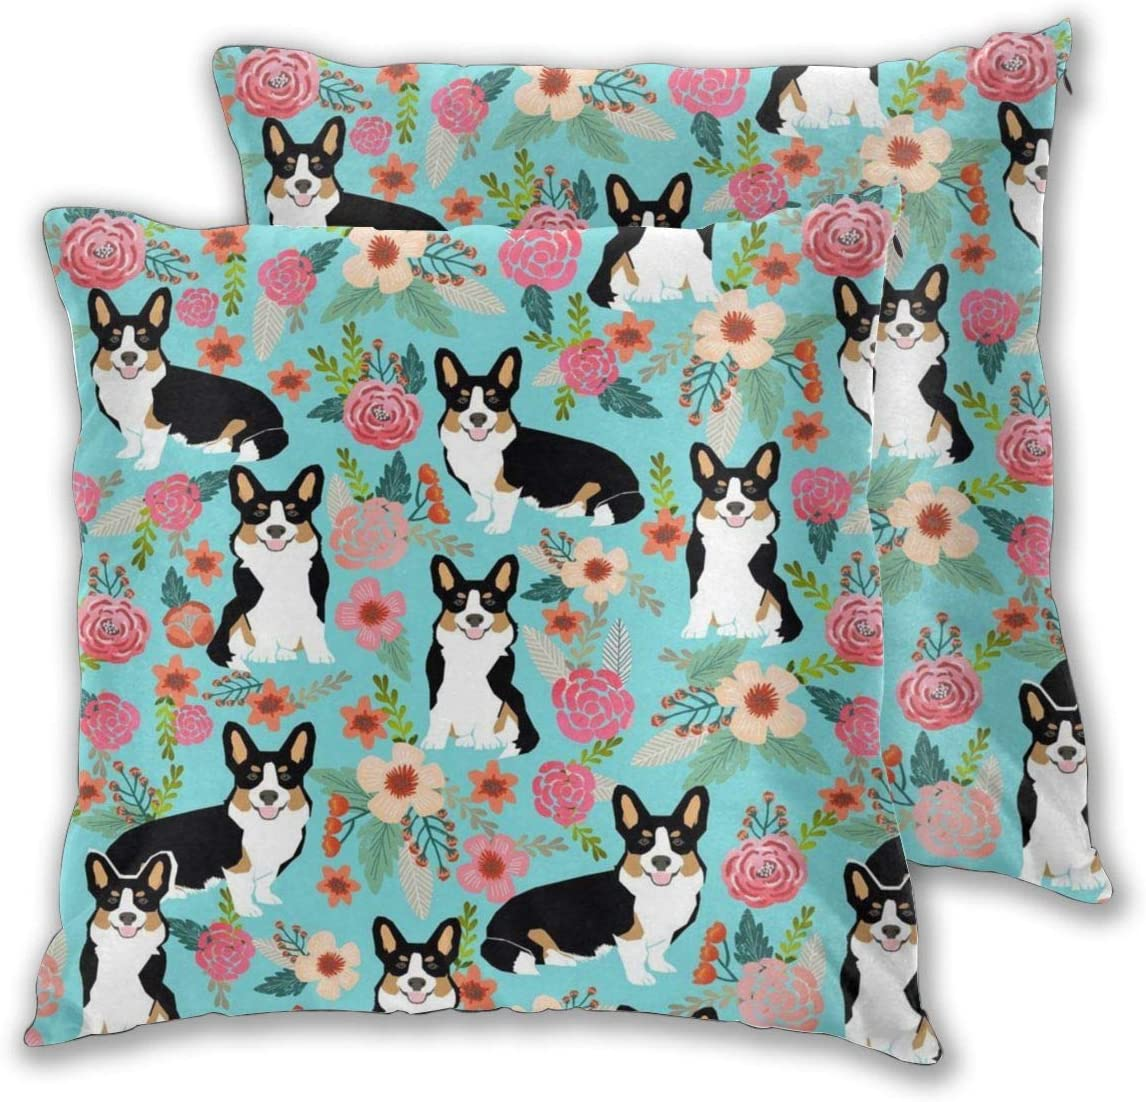 "YUERF 2 PCS 16""x16"" Corgi Cute Black and Tan Welsh Cardigan Corgi with Florals Flowers Throw Pillow Covers Decorative Cushion Case, Inserts are Not Included"